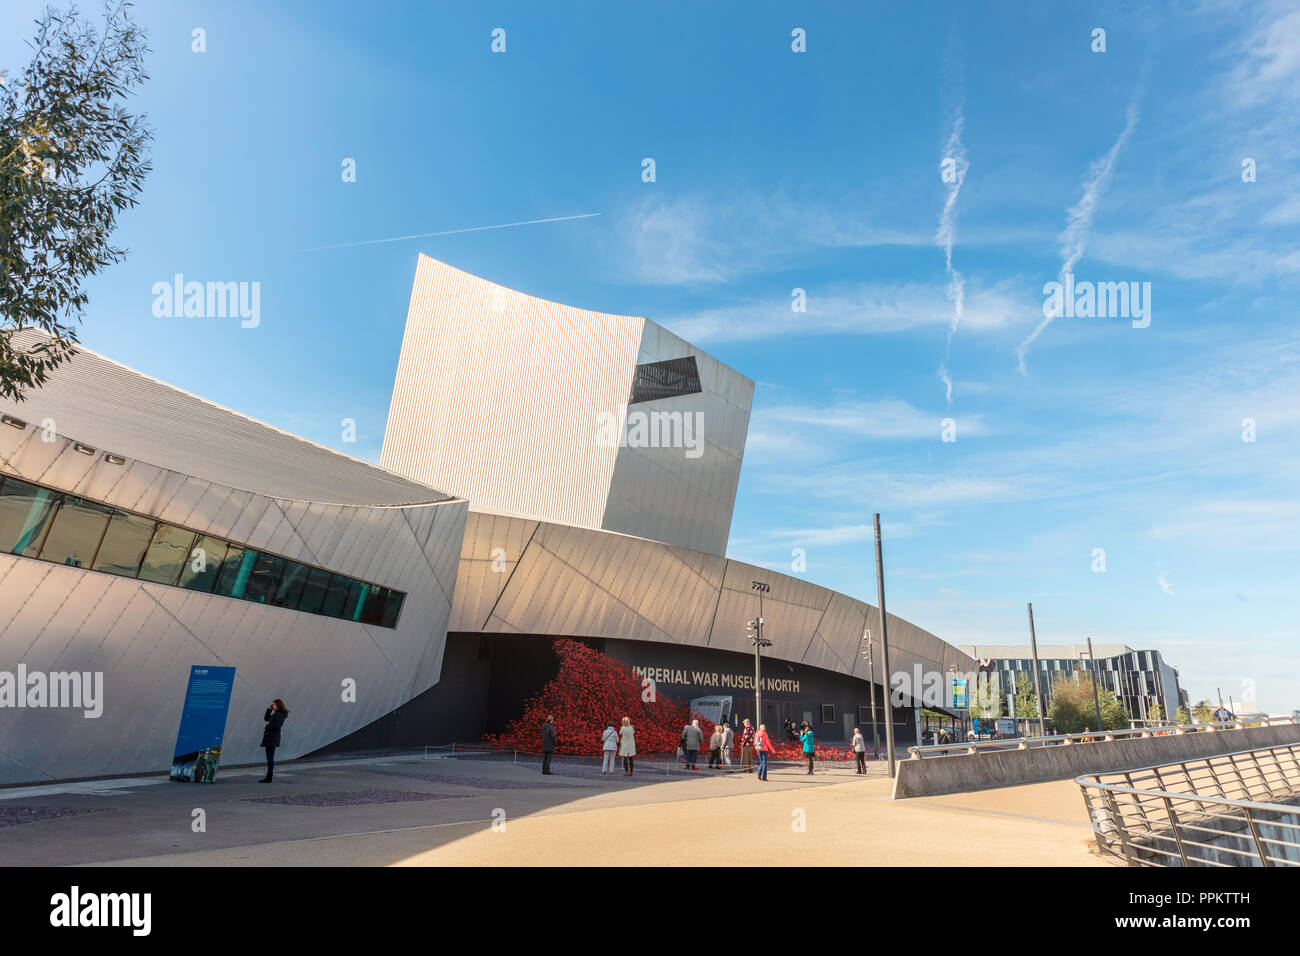 Imperial War Museum North with the iconic red poppy sculpture Wave by artist Paul Cummins and designer Tom Piper outside. - Stock Image